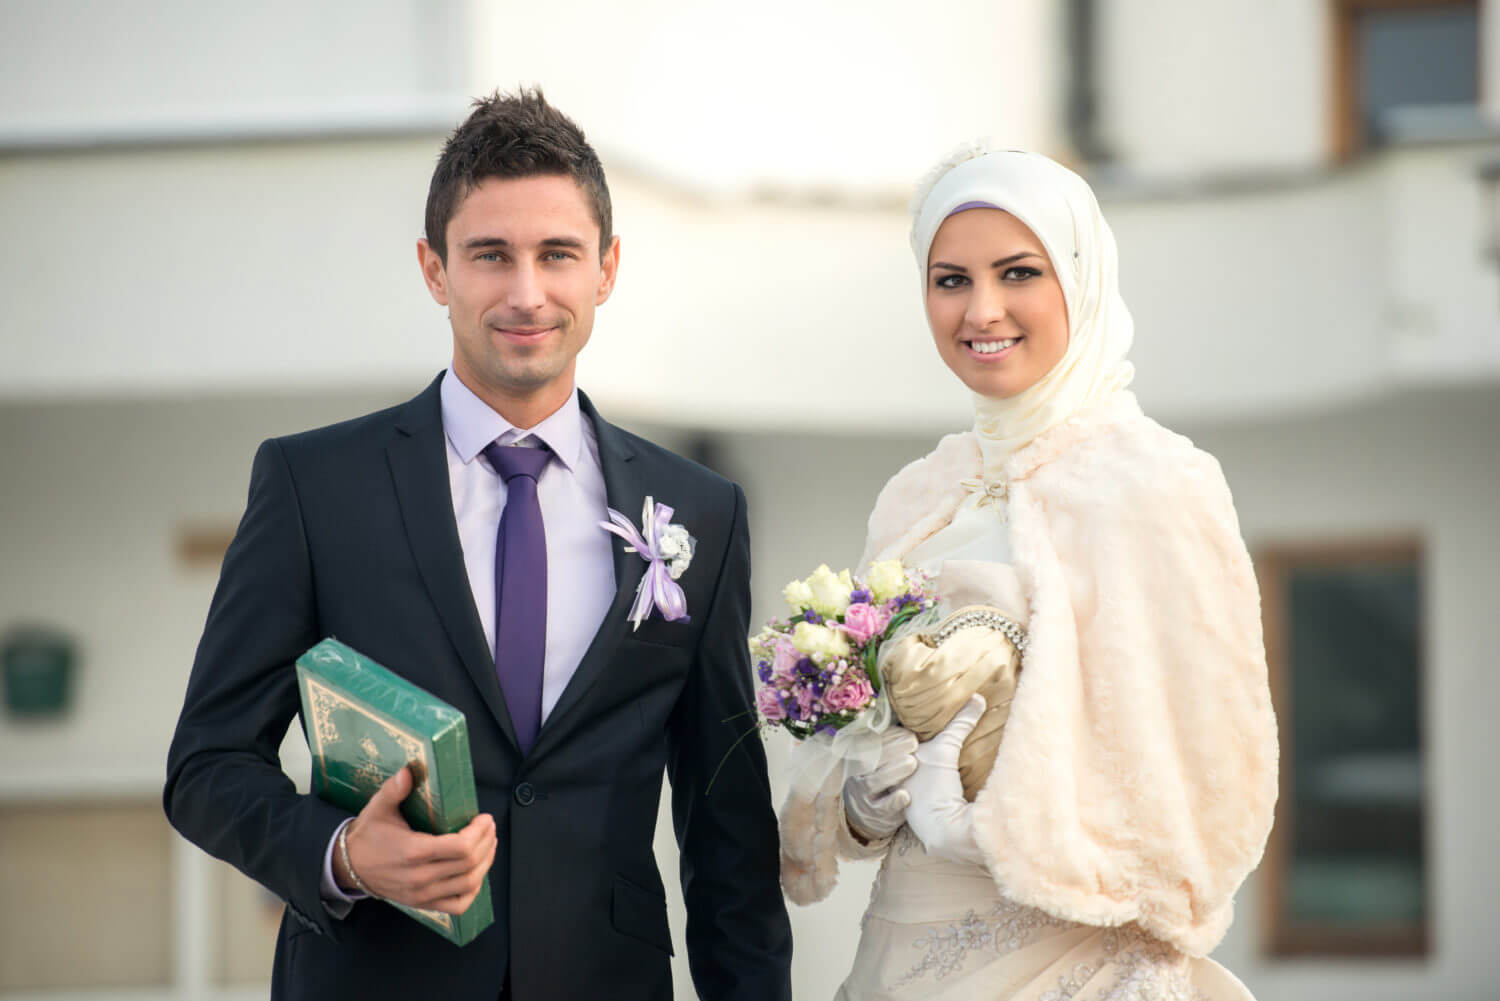 How to Be a Good Muslim Husband